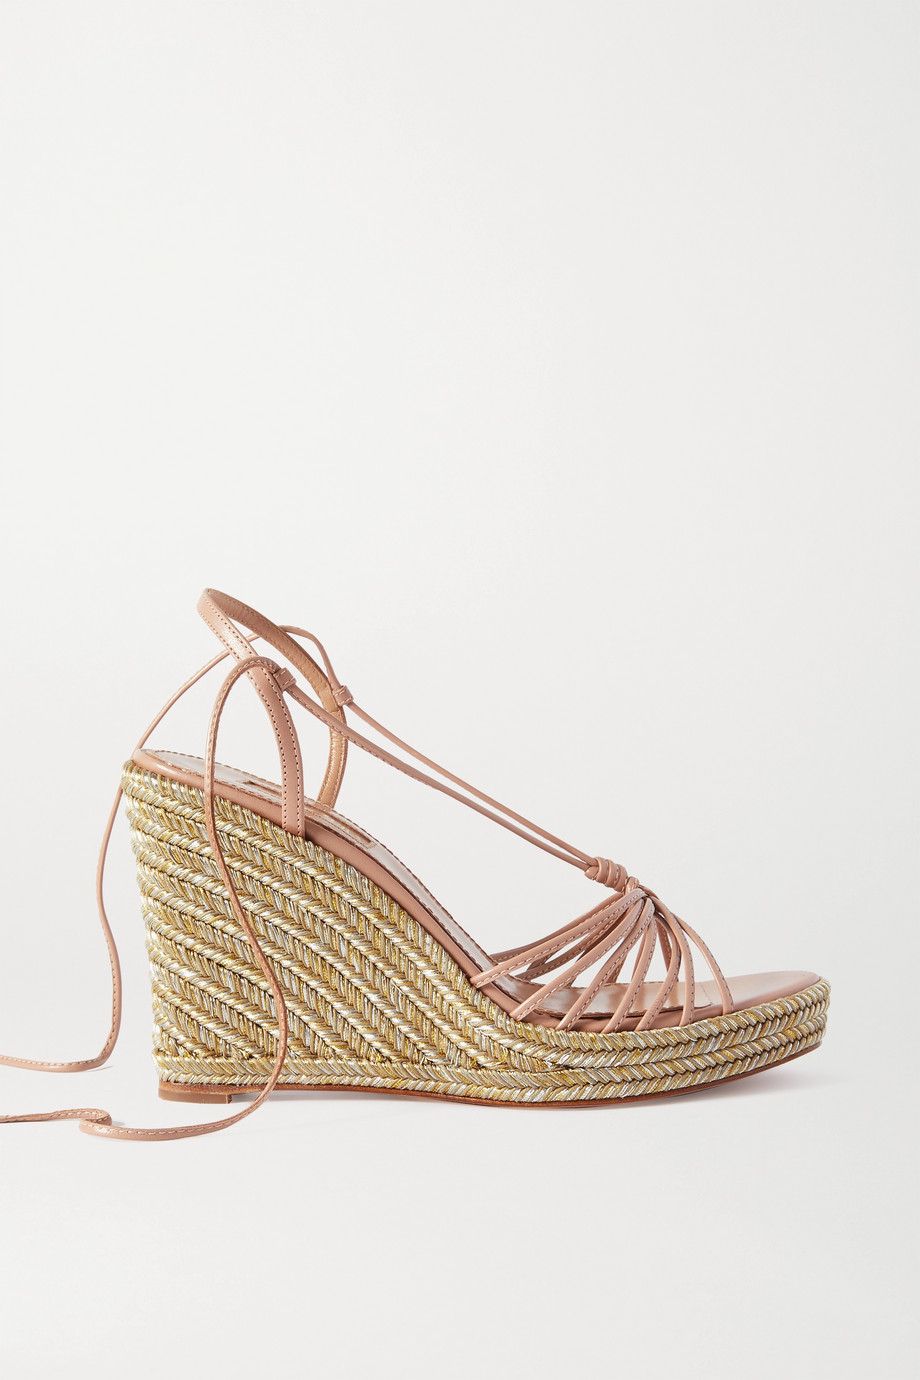 Aquazzura Whisper 85 leather espadrille wedge sandals